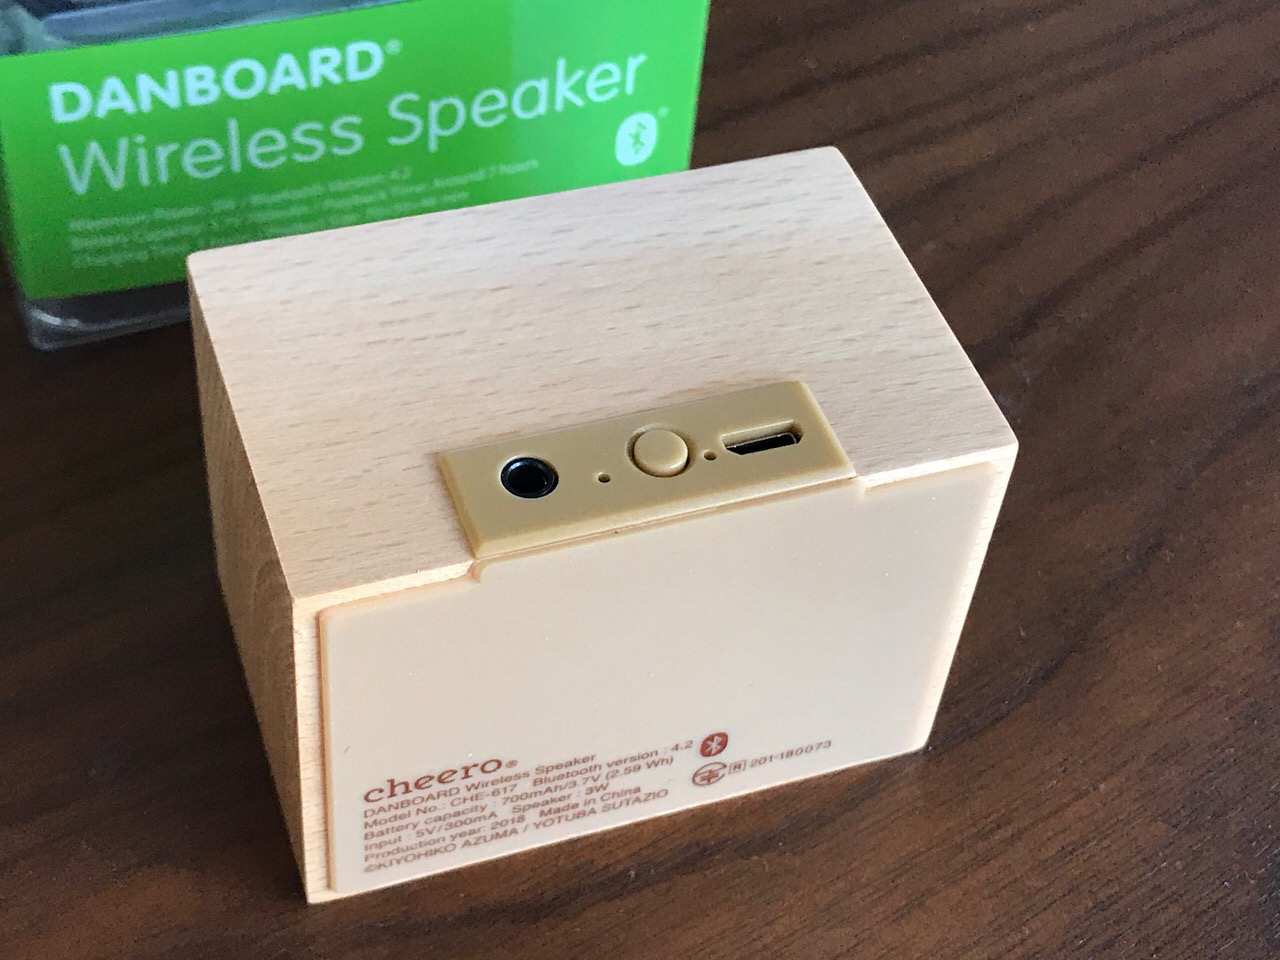 cheero Danboard Wireless Speaker 05